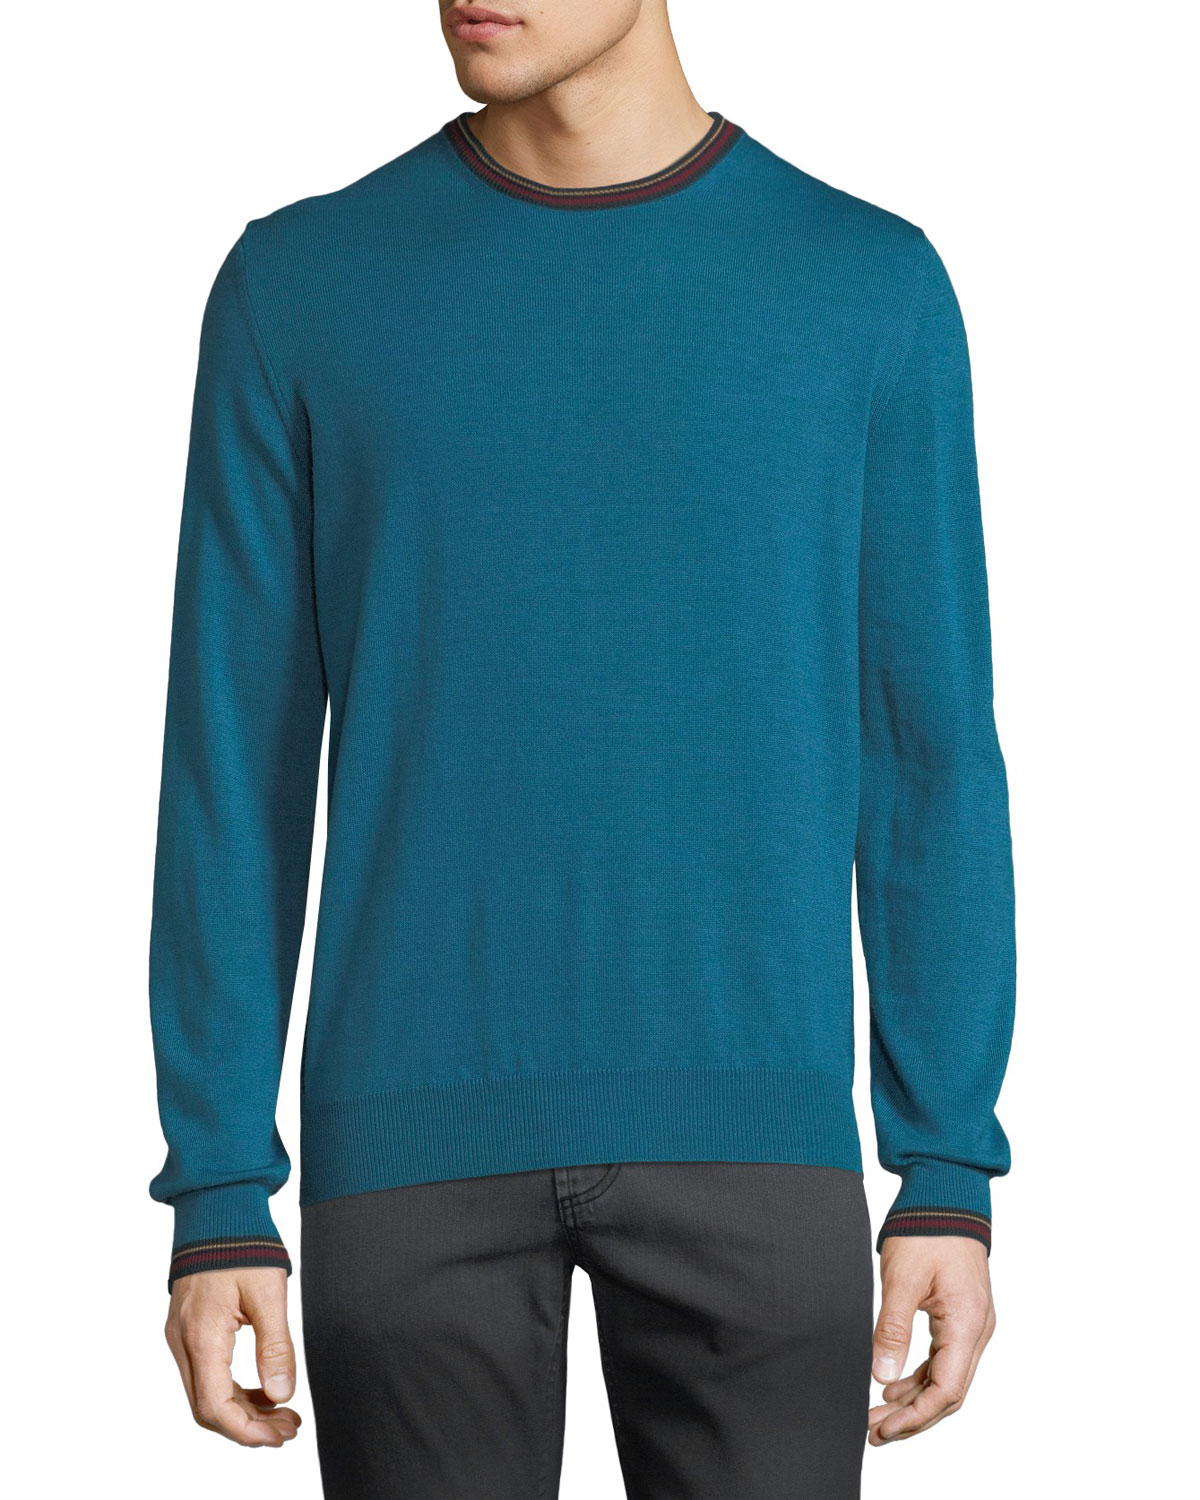 Men's Collegiate Crewneck Wool Sweater